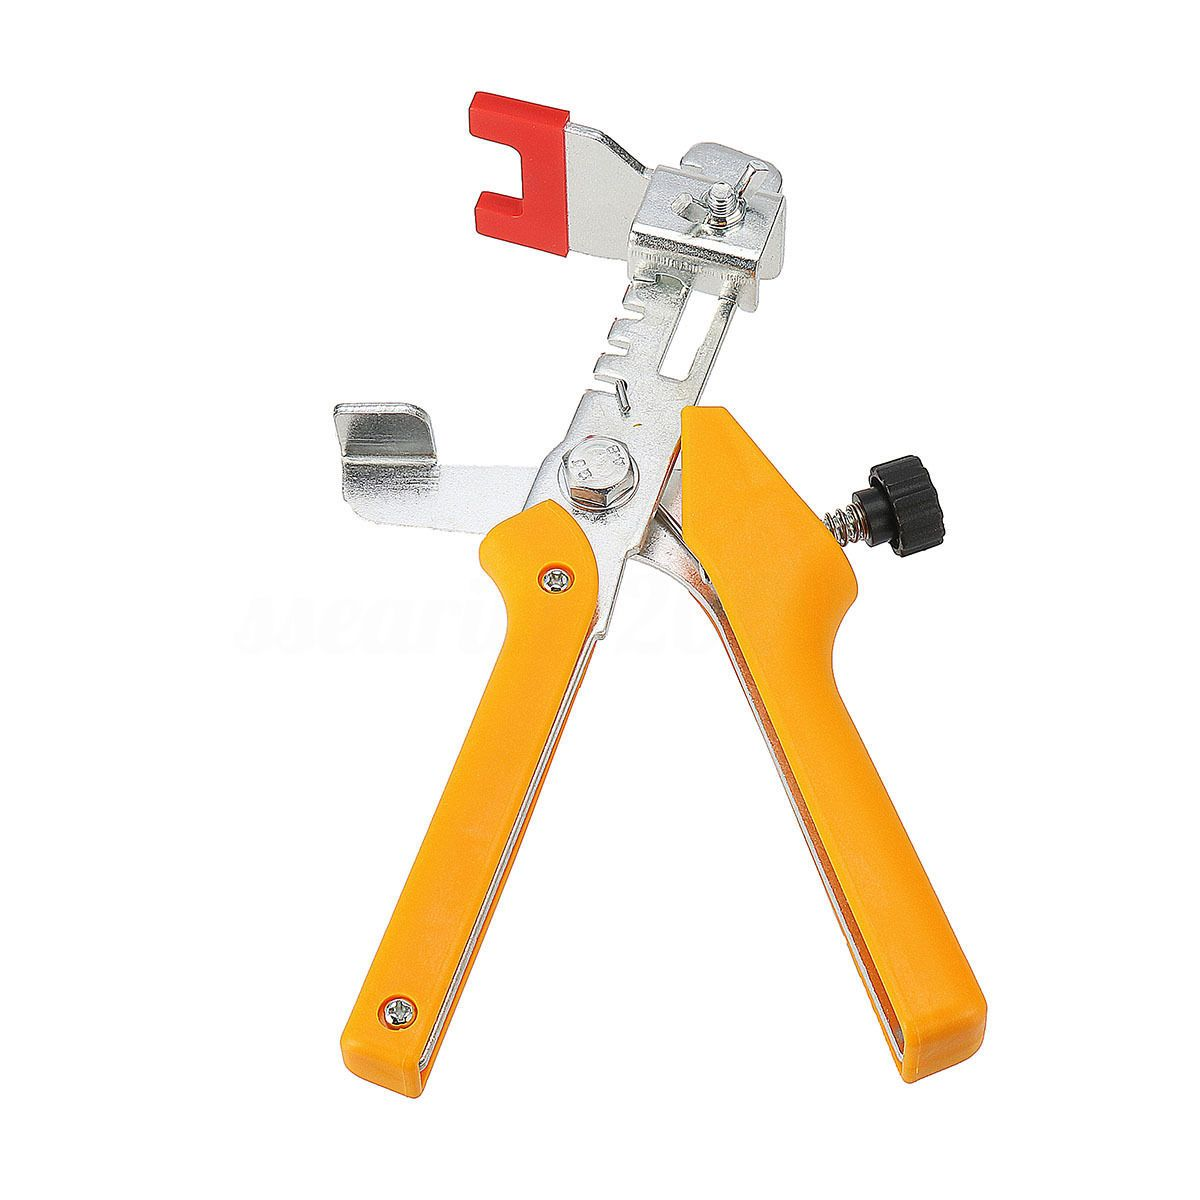 New leveling system wall floor pliers mayitr ground floor ceramic new leveling system wall floor pliers mayitr ground floor ceramic tile leveling system tiling installation tools dailygadgetfo Images